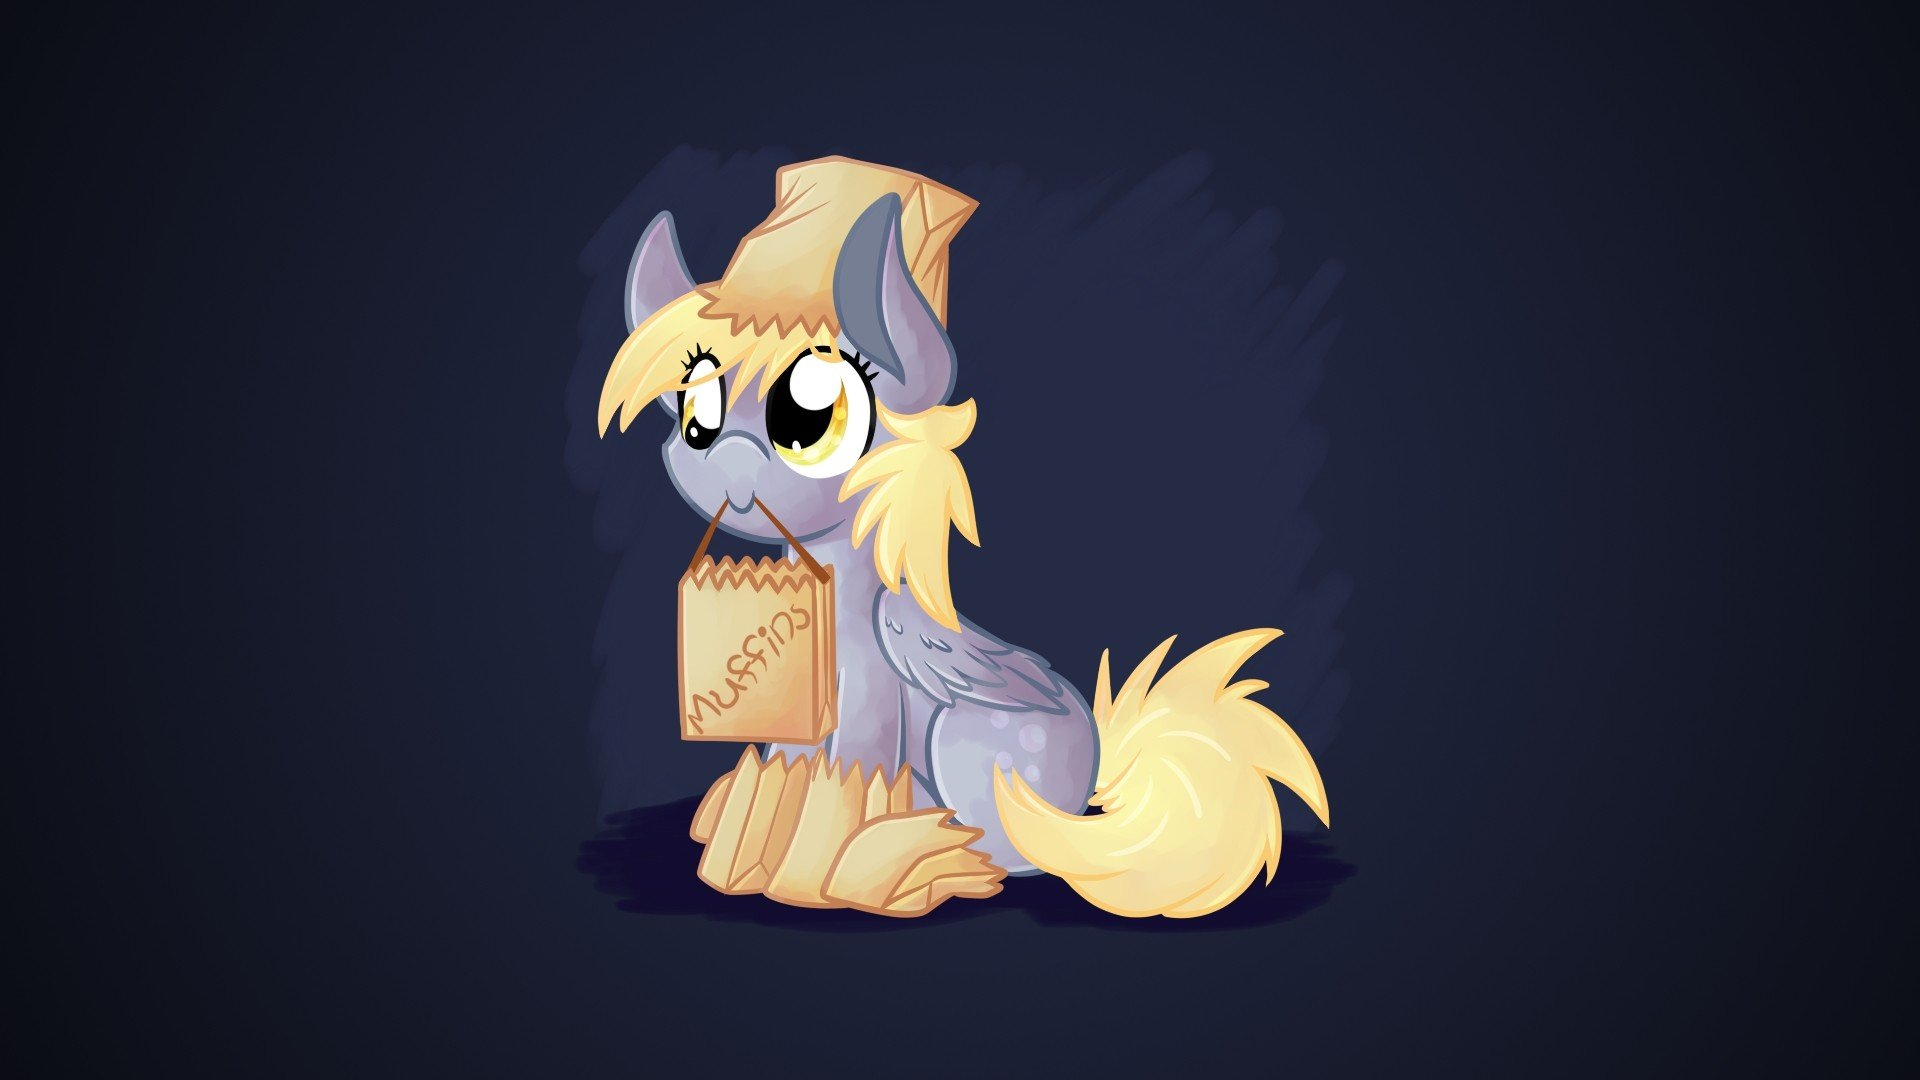 Ponies Derpy Hooves My Little Pony Friendship Is Magic